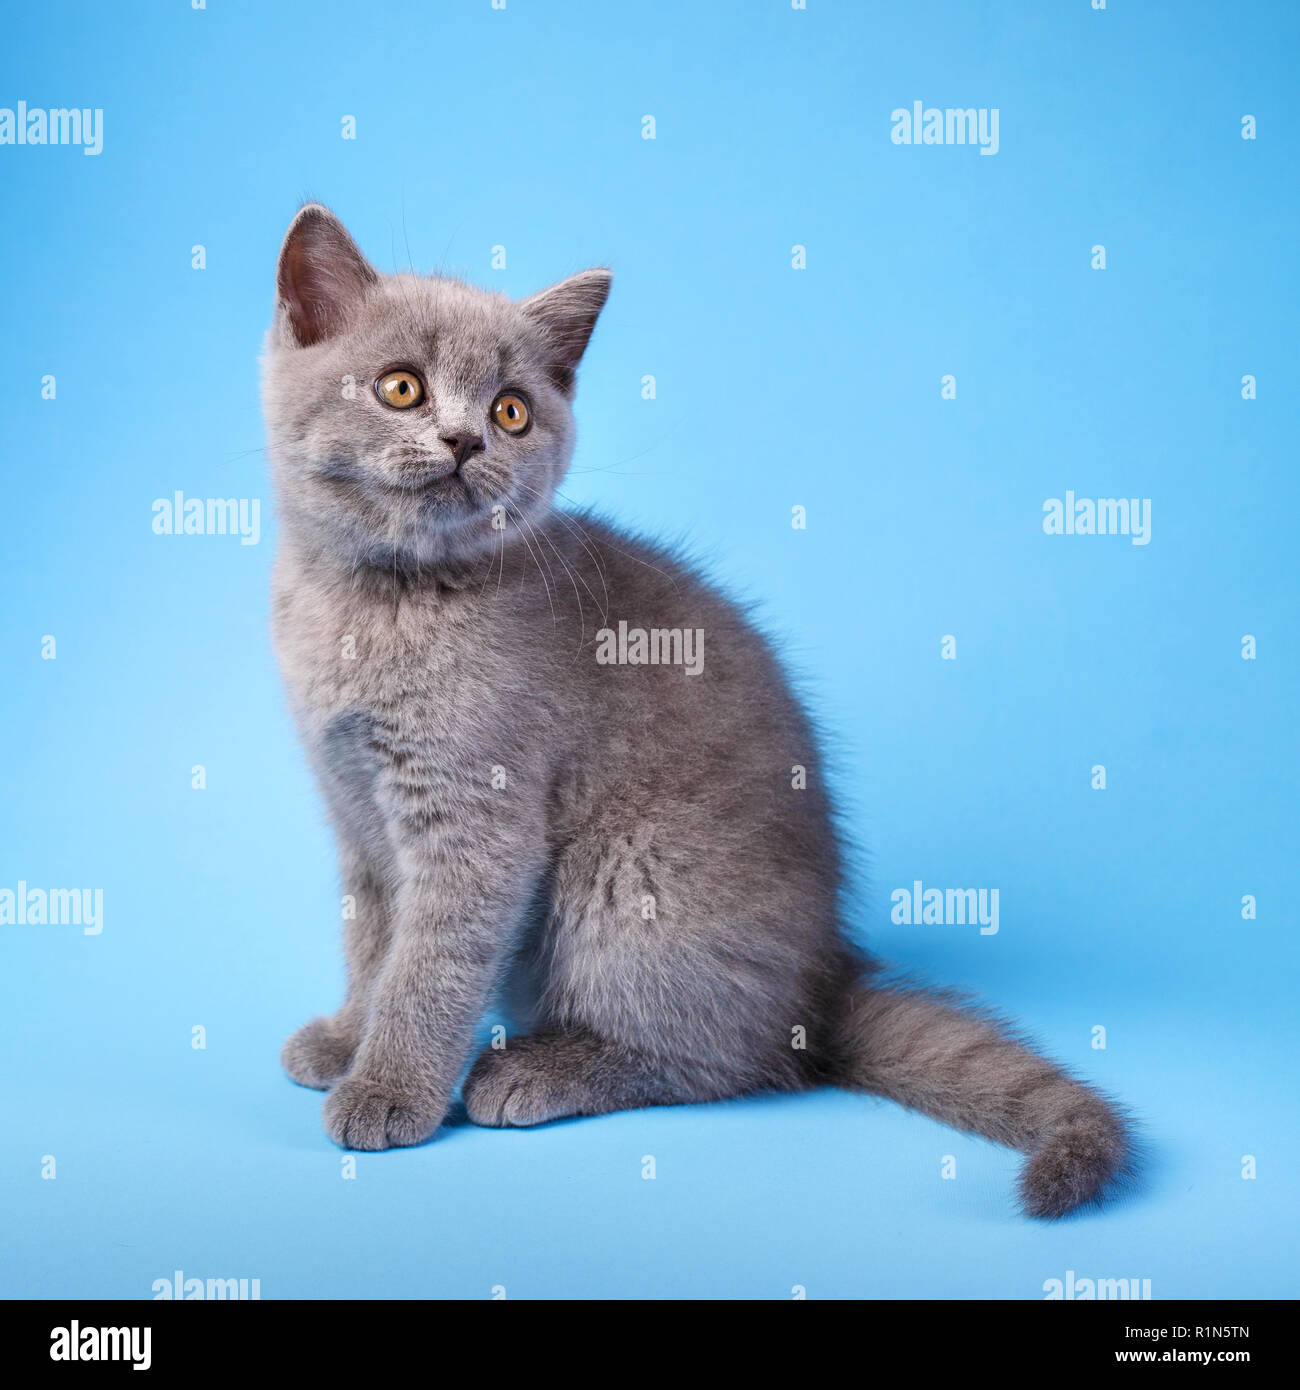 Kitty gris avec des moustaches sur un fond bleu. Photo Stock